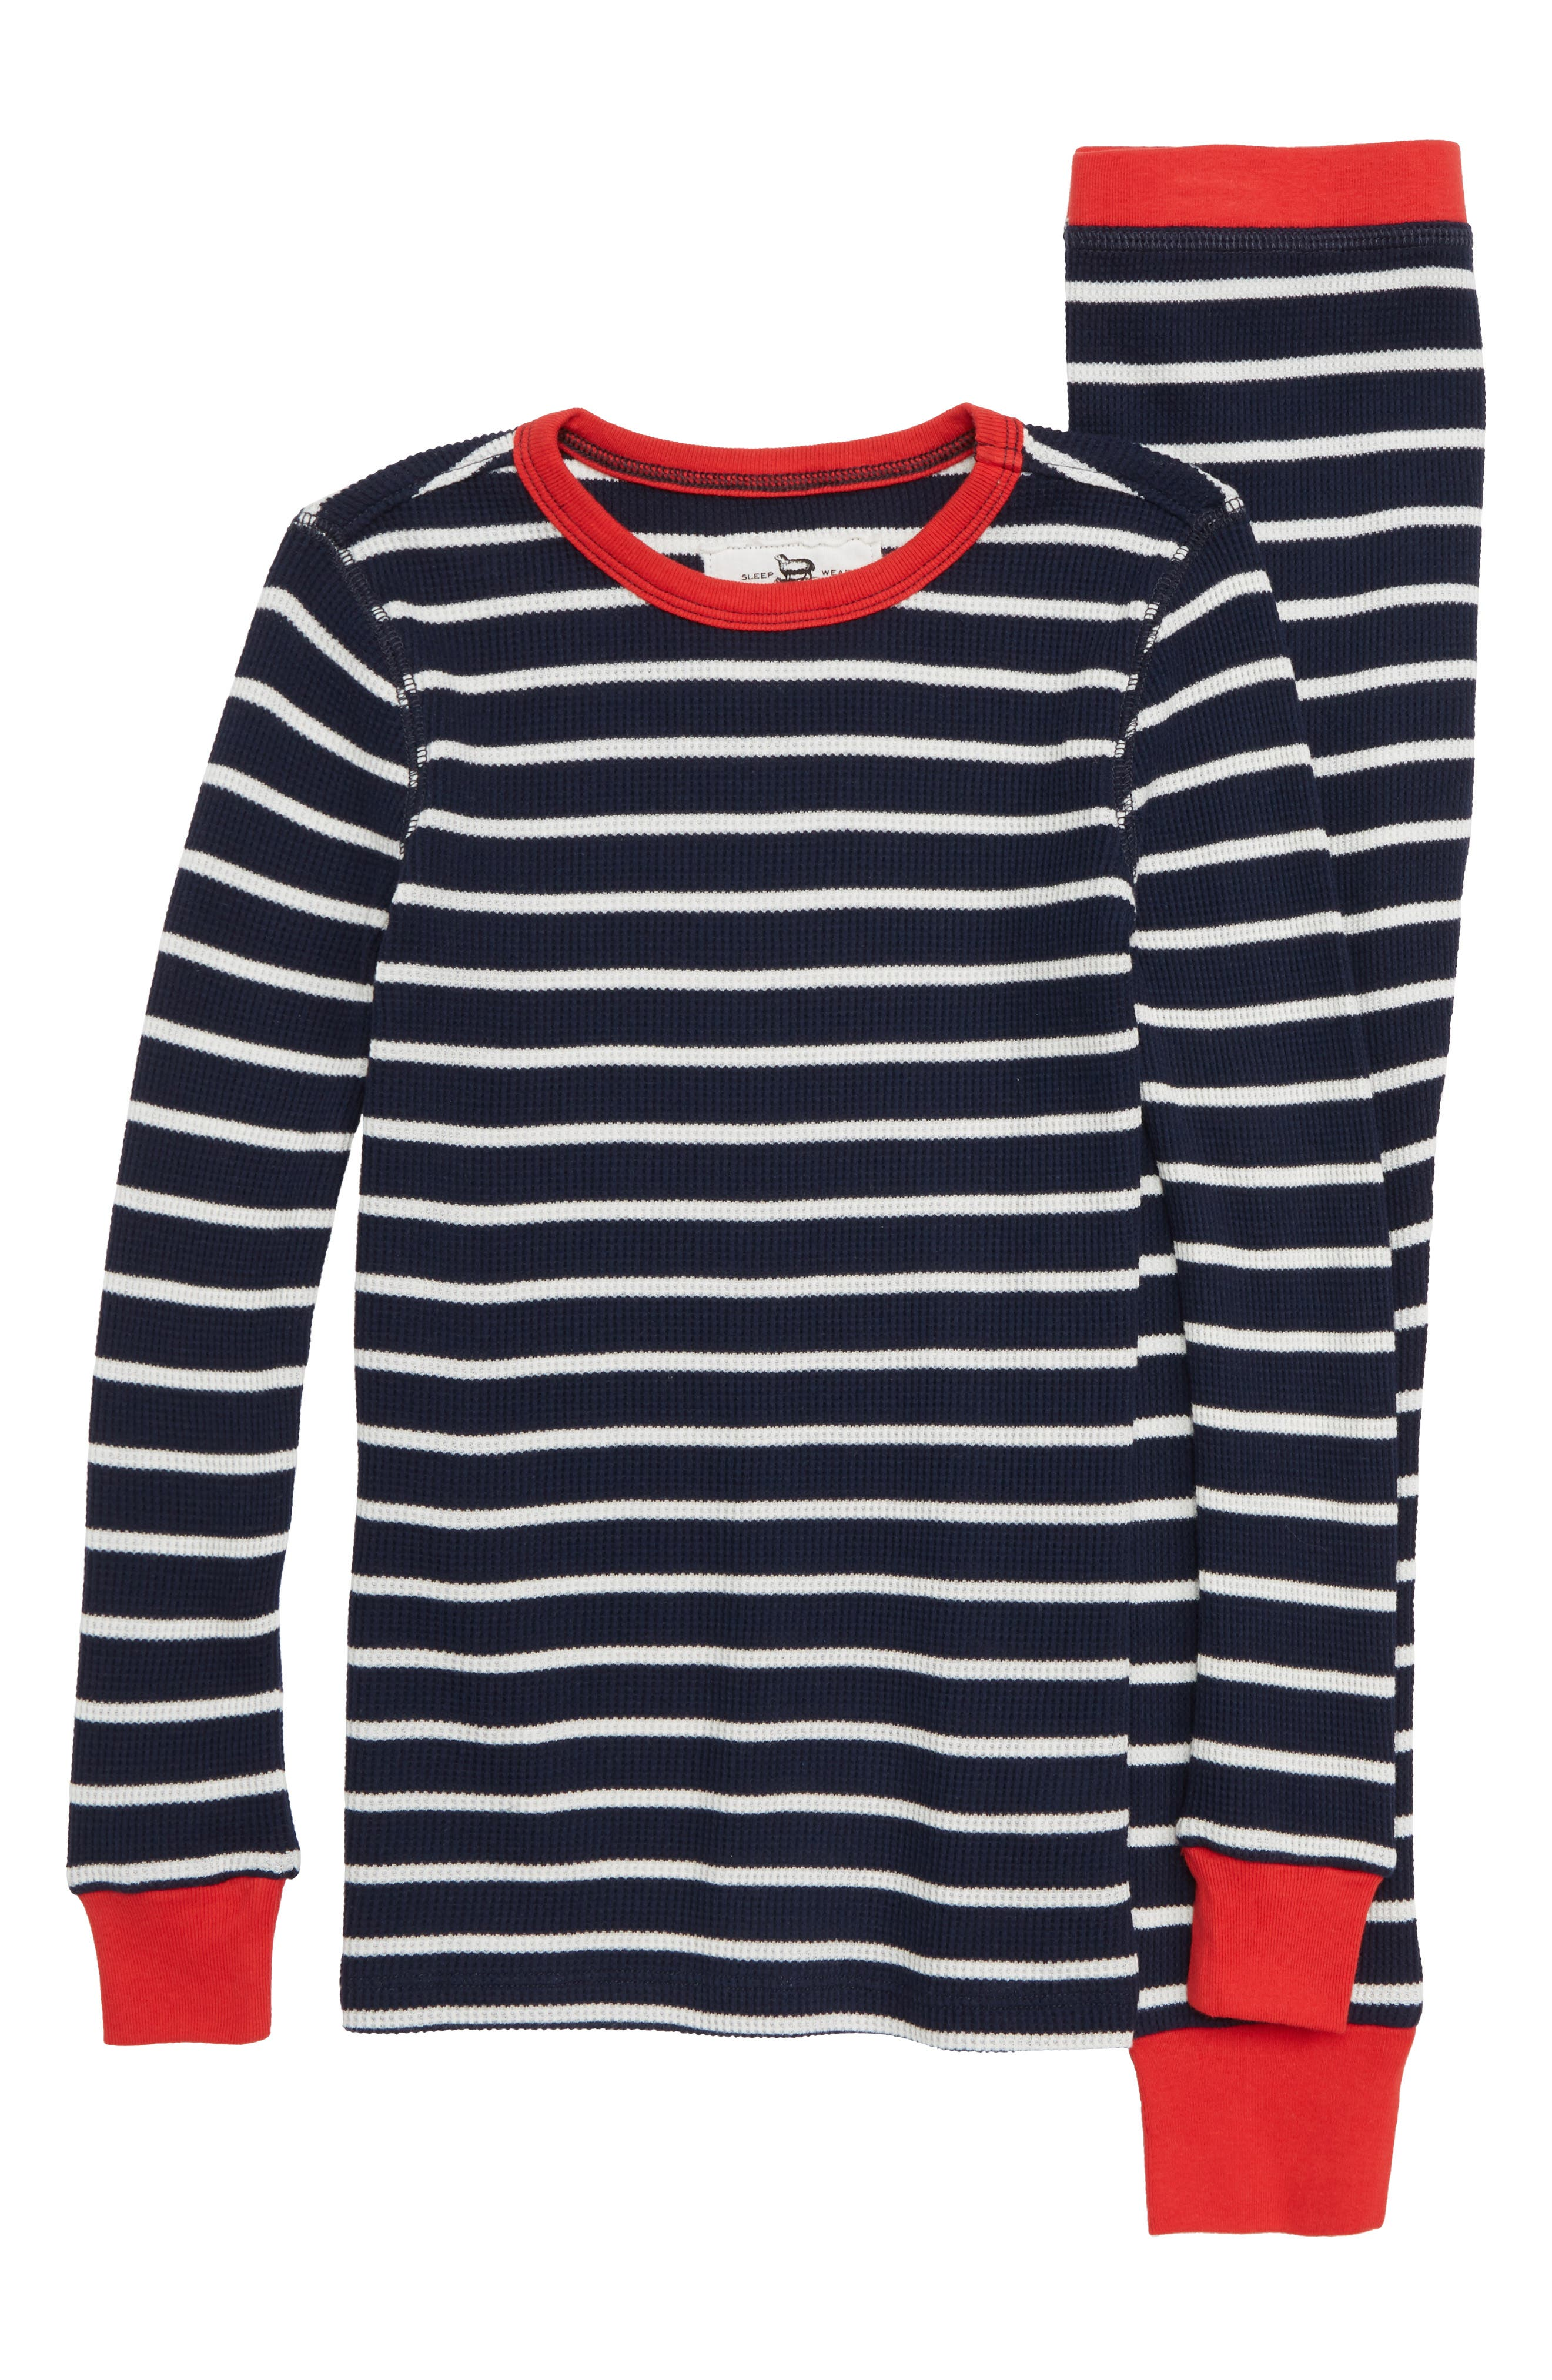 Stripe Fitted Two-Piece Pajamas,                             Main thumbnail 1, color,                             NAVY IVORY